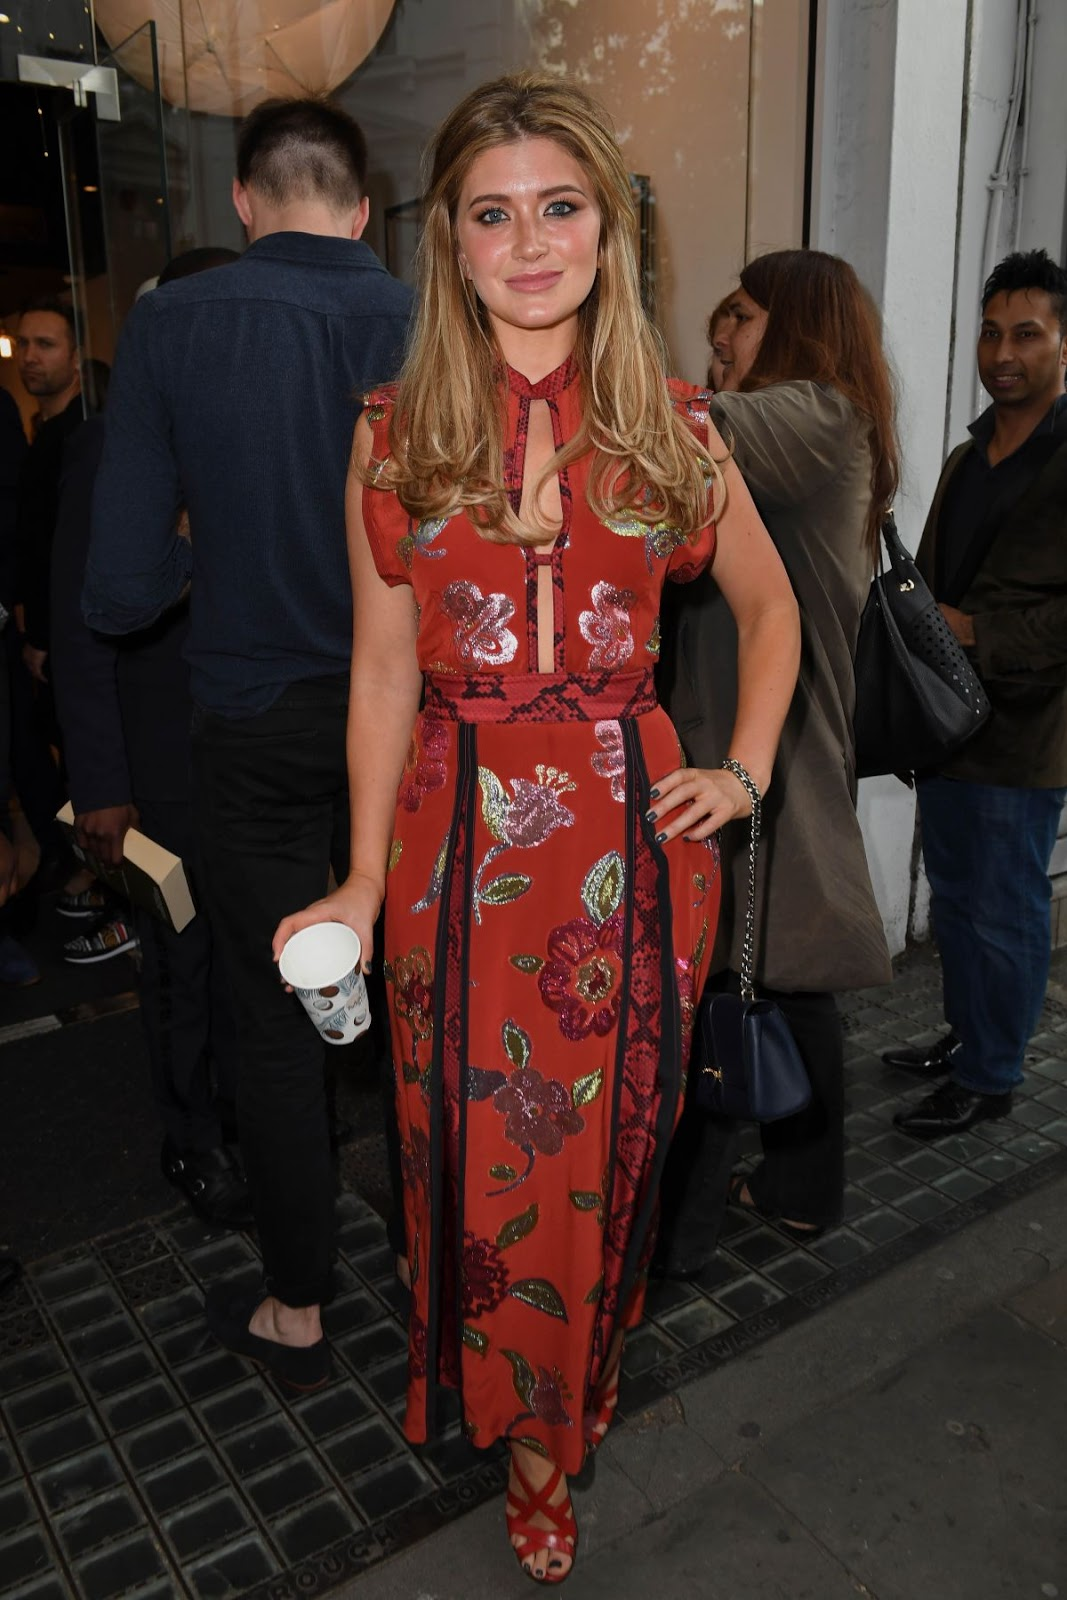 Lauren Hutton at Joel Swimwear X Collier Bristow Press Launch in London